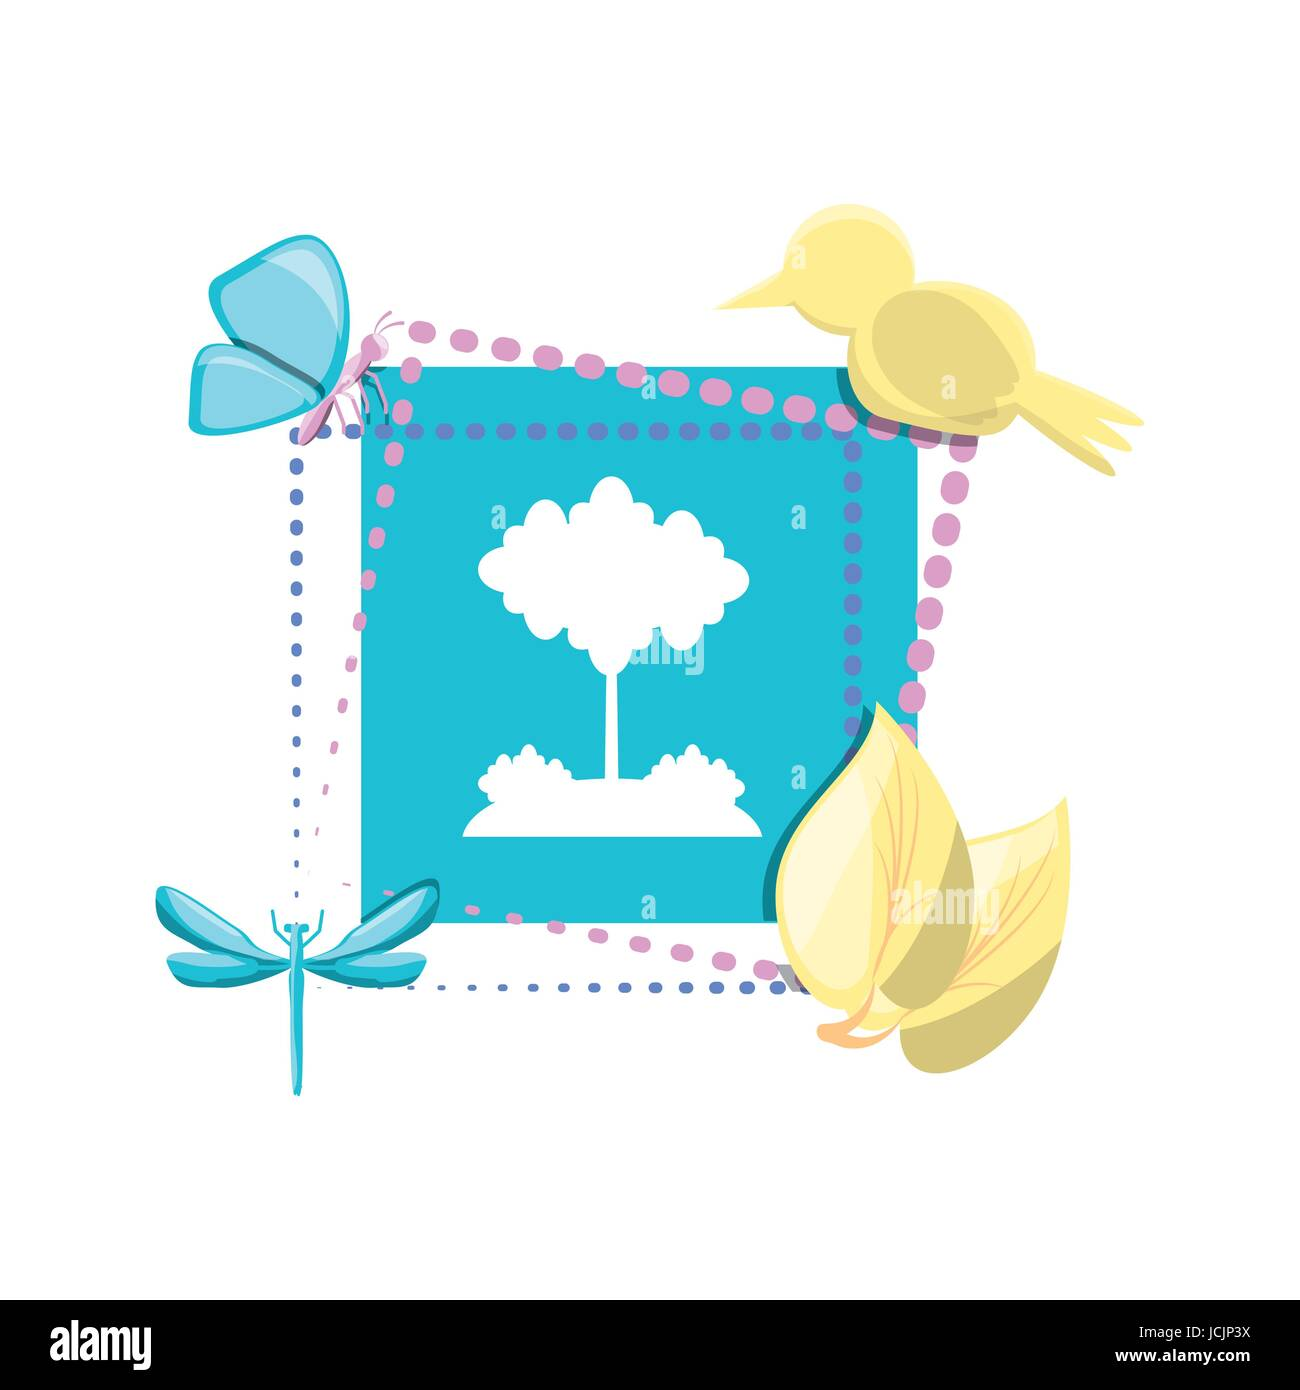 emblem of tree with leaves and animals - Stock Image